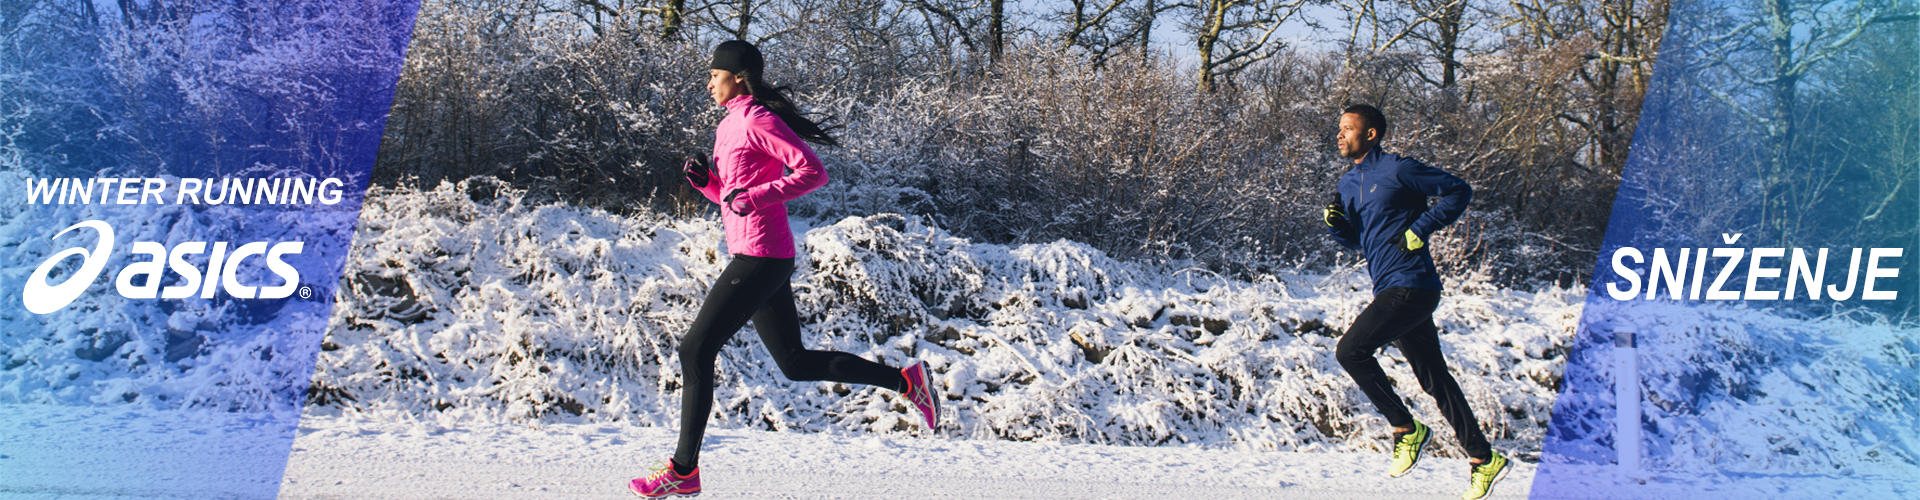 Asics Winter running sniženje